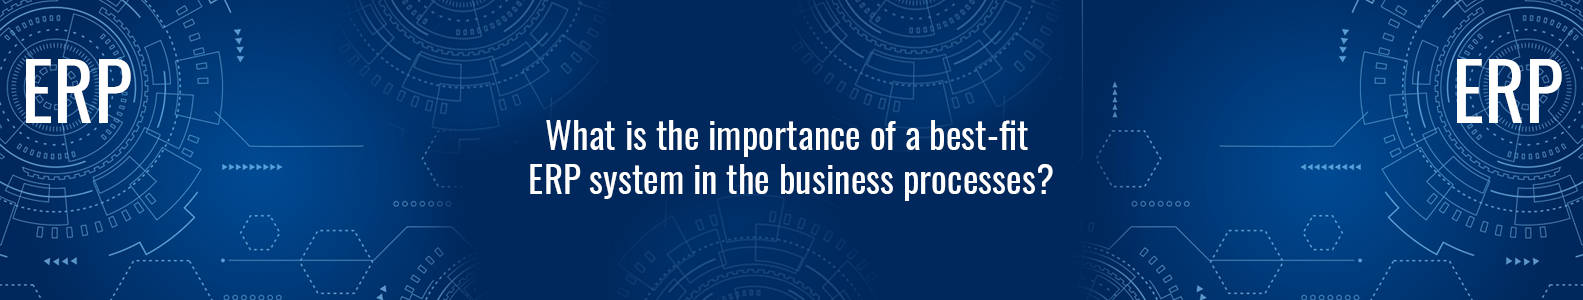 What is the importance of a best fit ERP system in the business processes